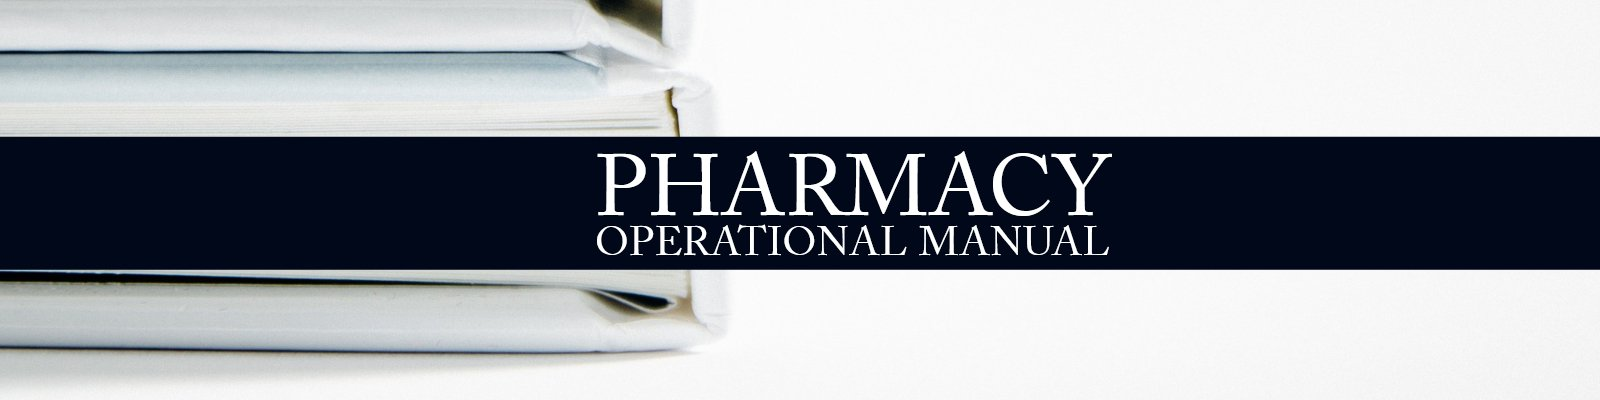 PHARMACY OPERATIONAL MANUAL, PHARMACY COMPLIANCE, PHARMACY OPERATIONS, HELP RUNNING MY PHARMACY, HOW TO RUN A PHARMACY